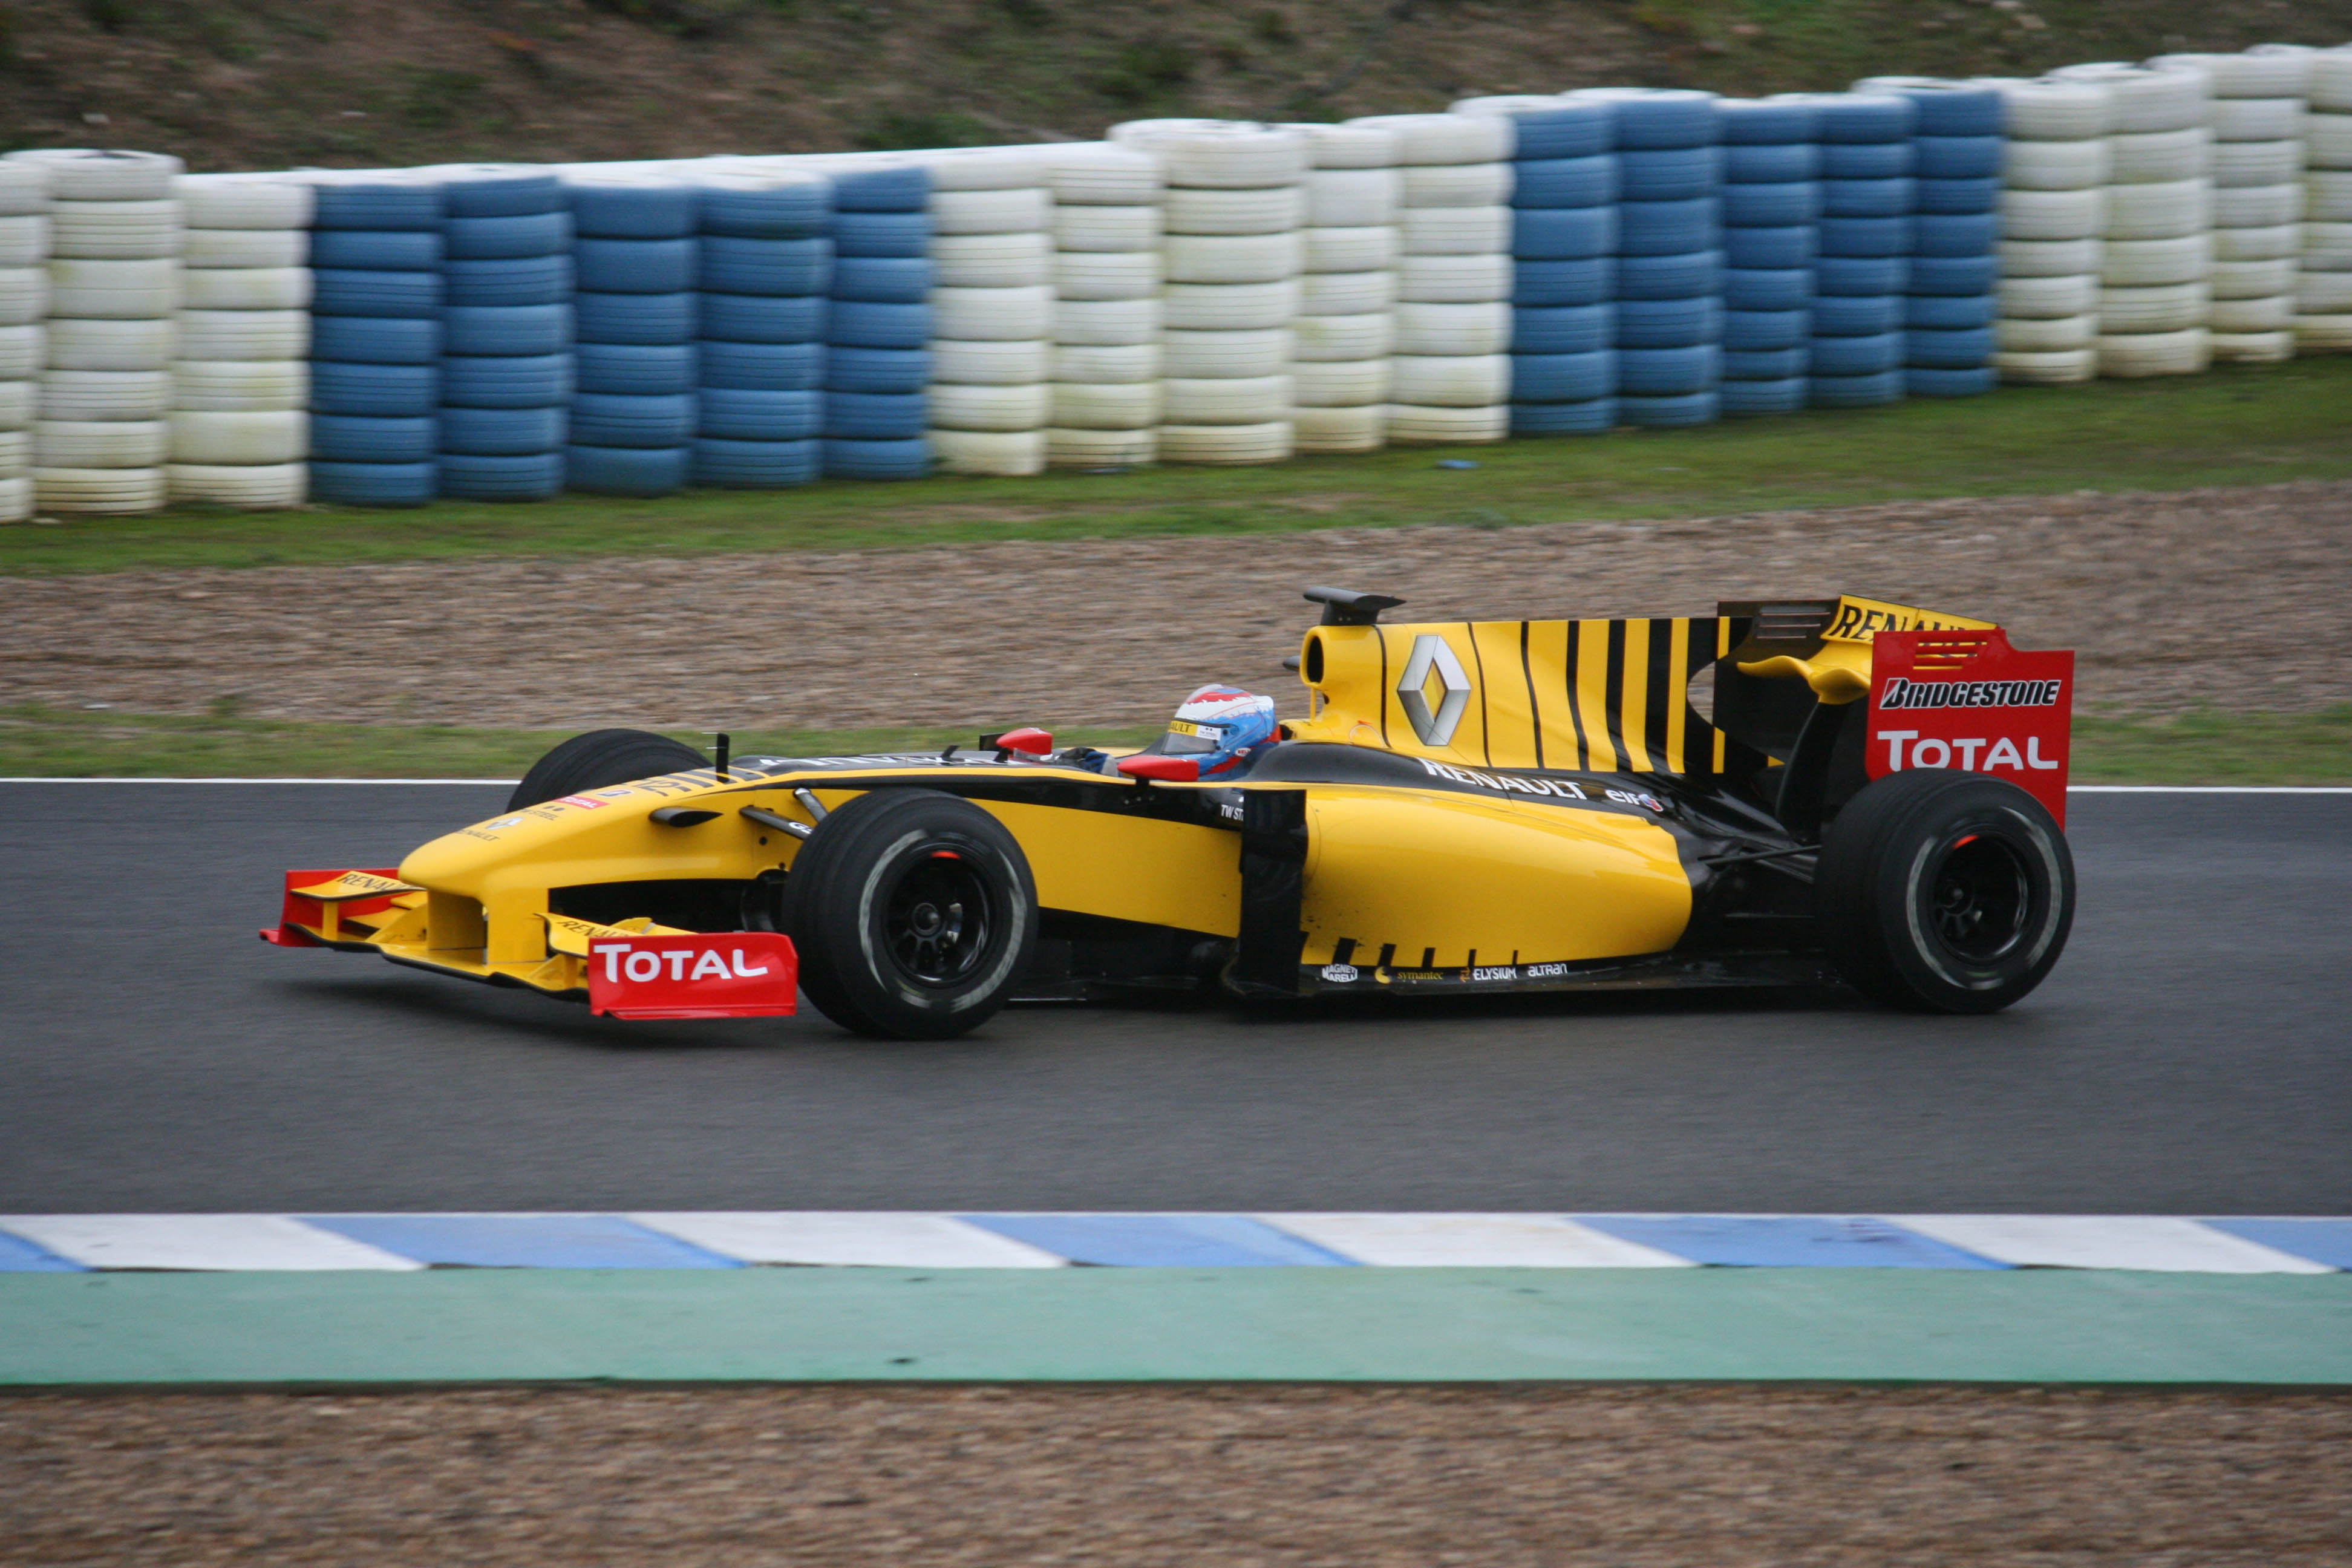 Renault R 30 photo 01